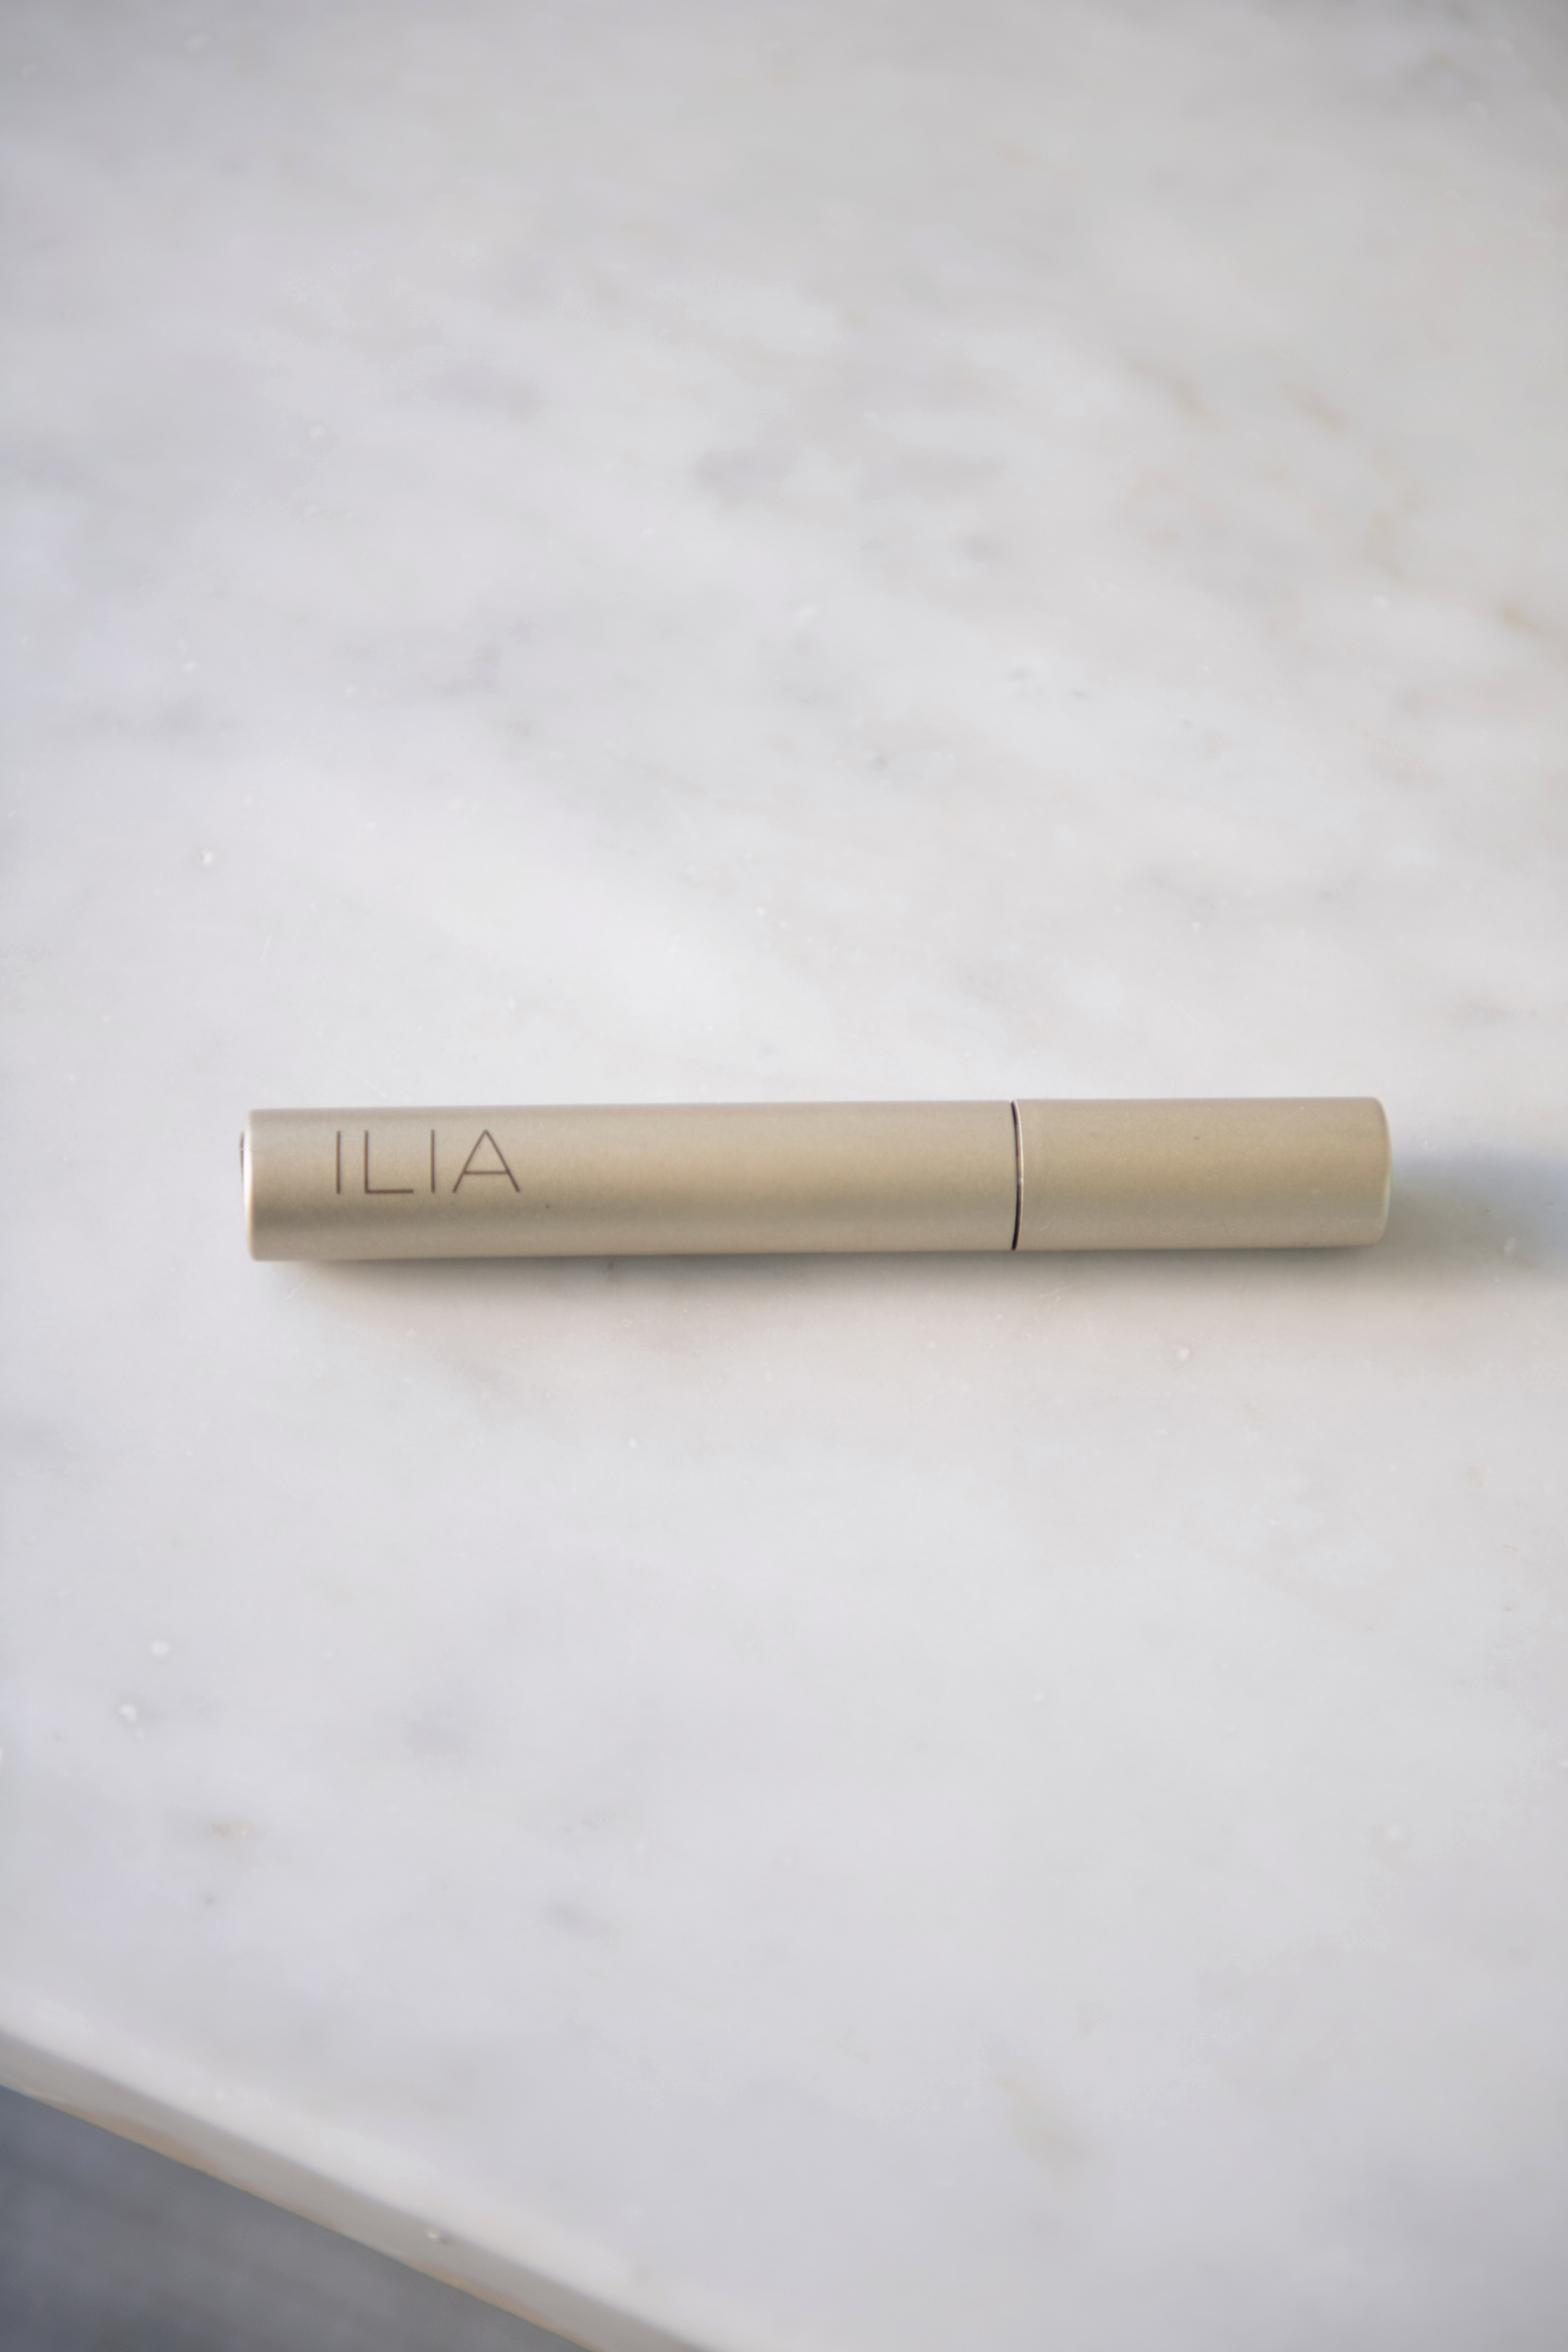 Ilia Limitless Lash Mascara Review